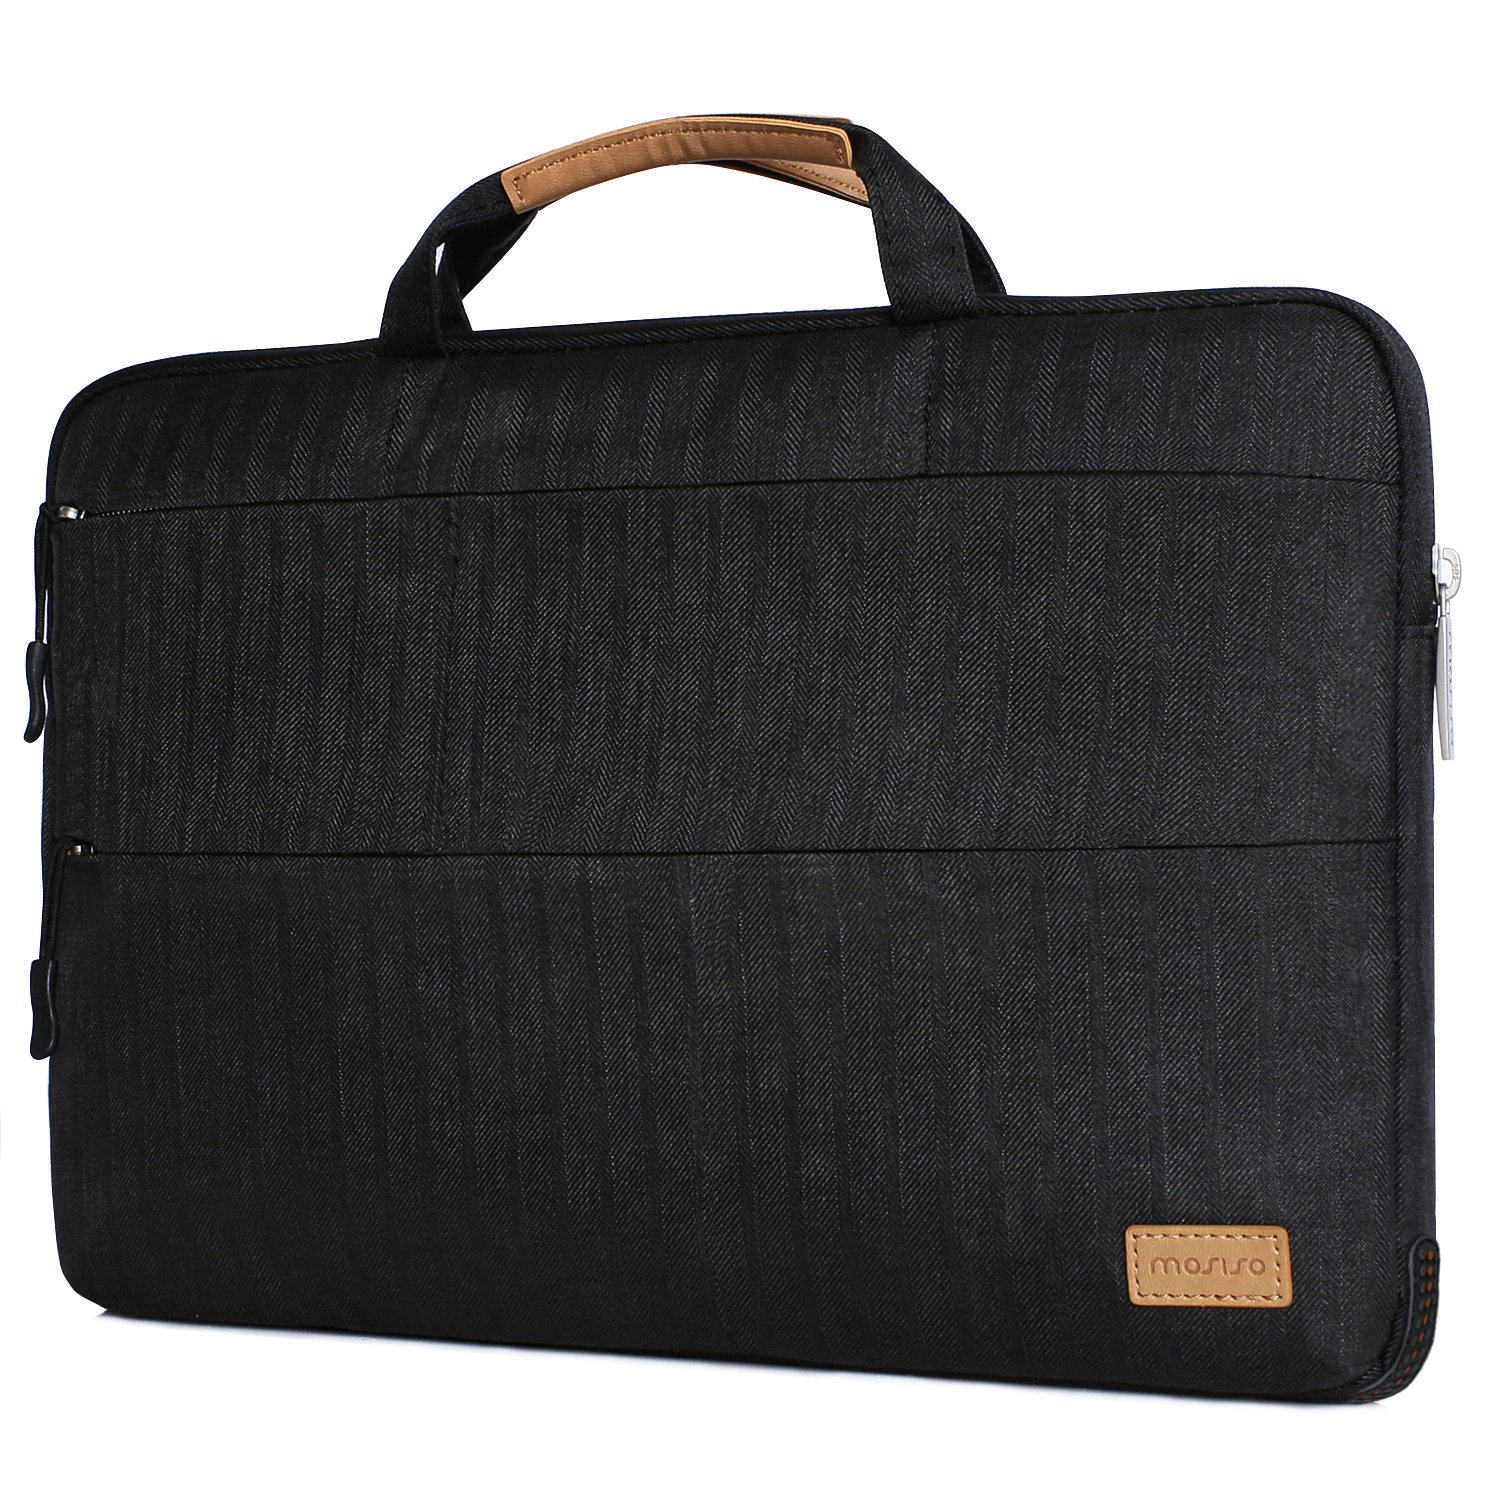 MOSISO Laptop Briefcase Bag Compatible 13-13.3 Inch MacBook Pro, MacBook Air, Notebook with Triangle Stand Holder, Shock Absorption Rubber Silicone Bumper Cushion Corner Polyester Sleeve Case, Black